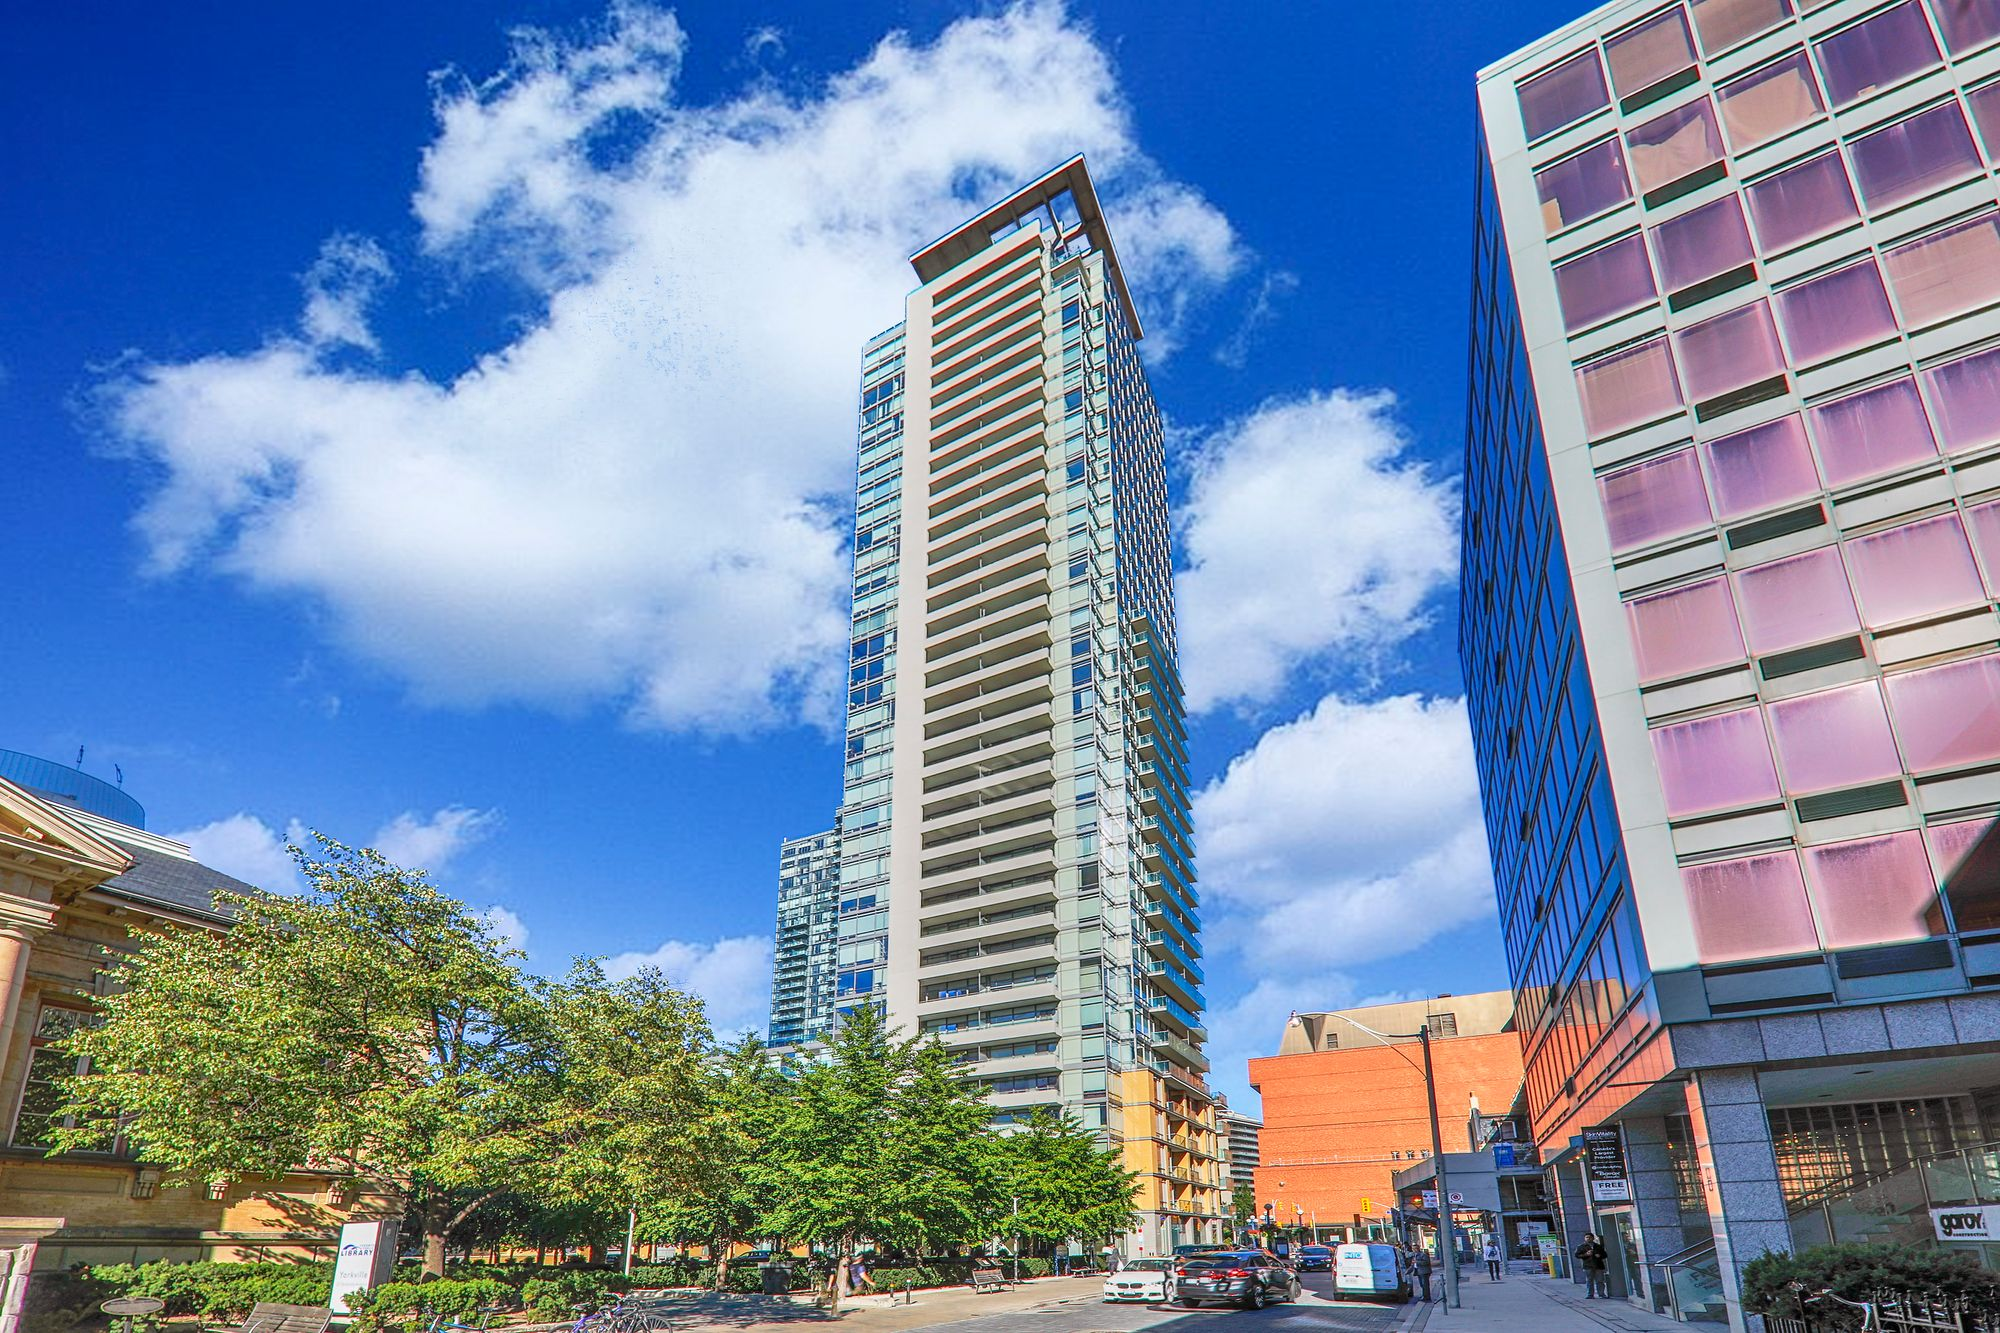 18 Yorkville at 18 Yorkville Ave. This condo is located in  Downtown, Toronto - image #1 of 7 by Strata.ca